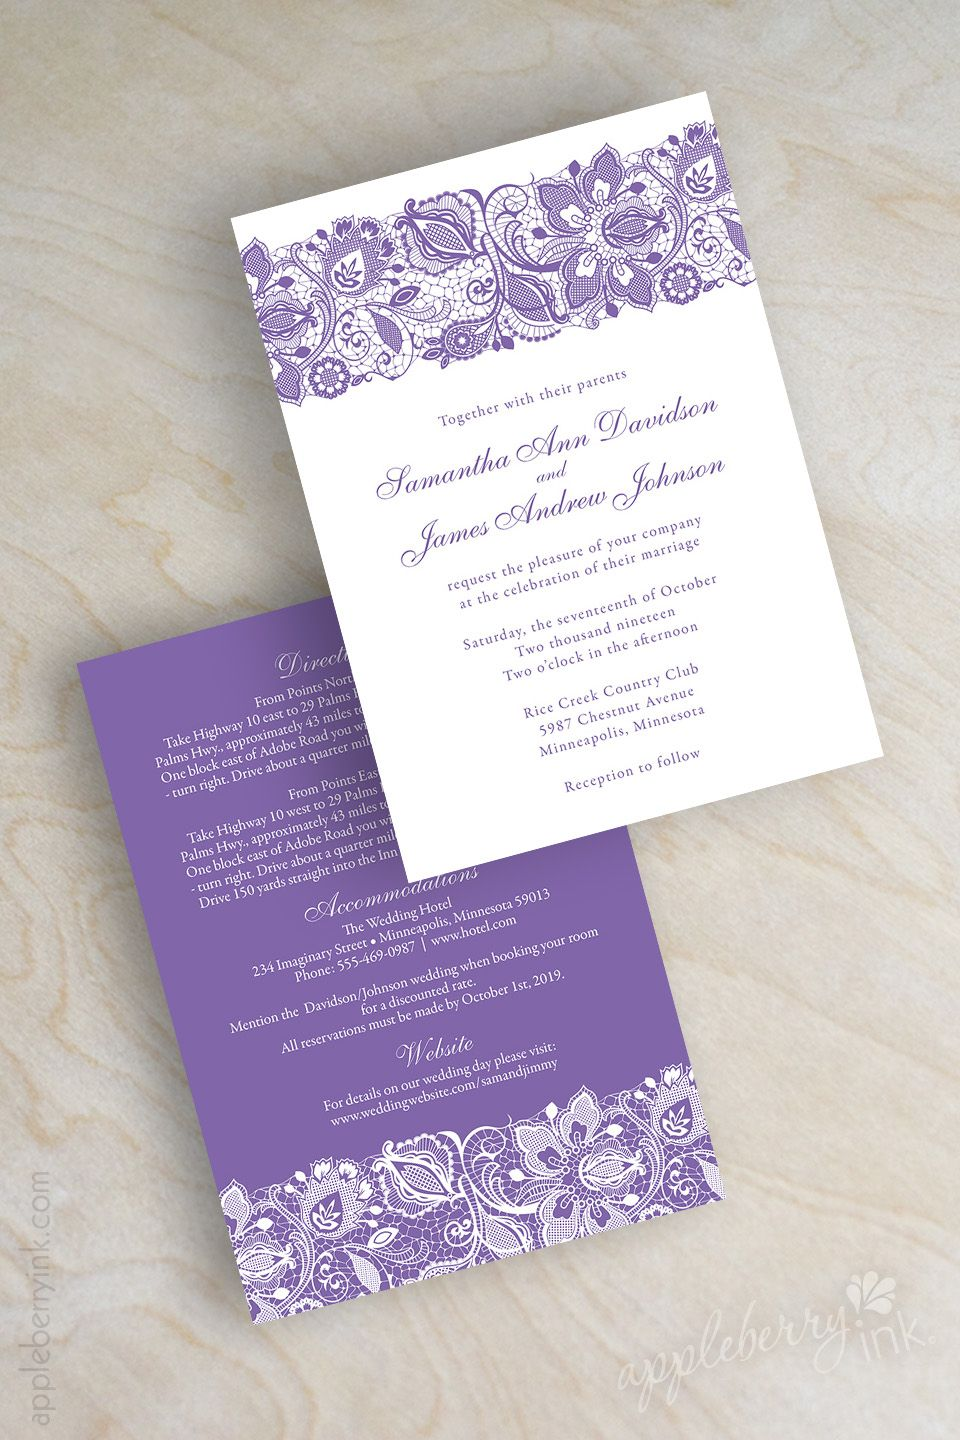 Elegant Lavender And White Lace Wedding Invitations Lilac Orchid Purple Invitation Www Leberryink